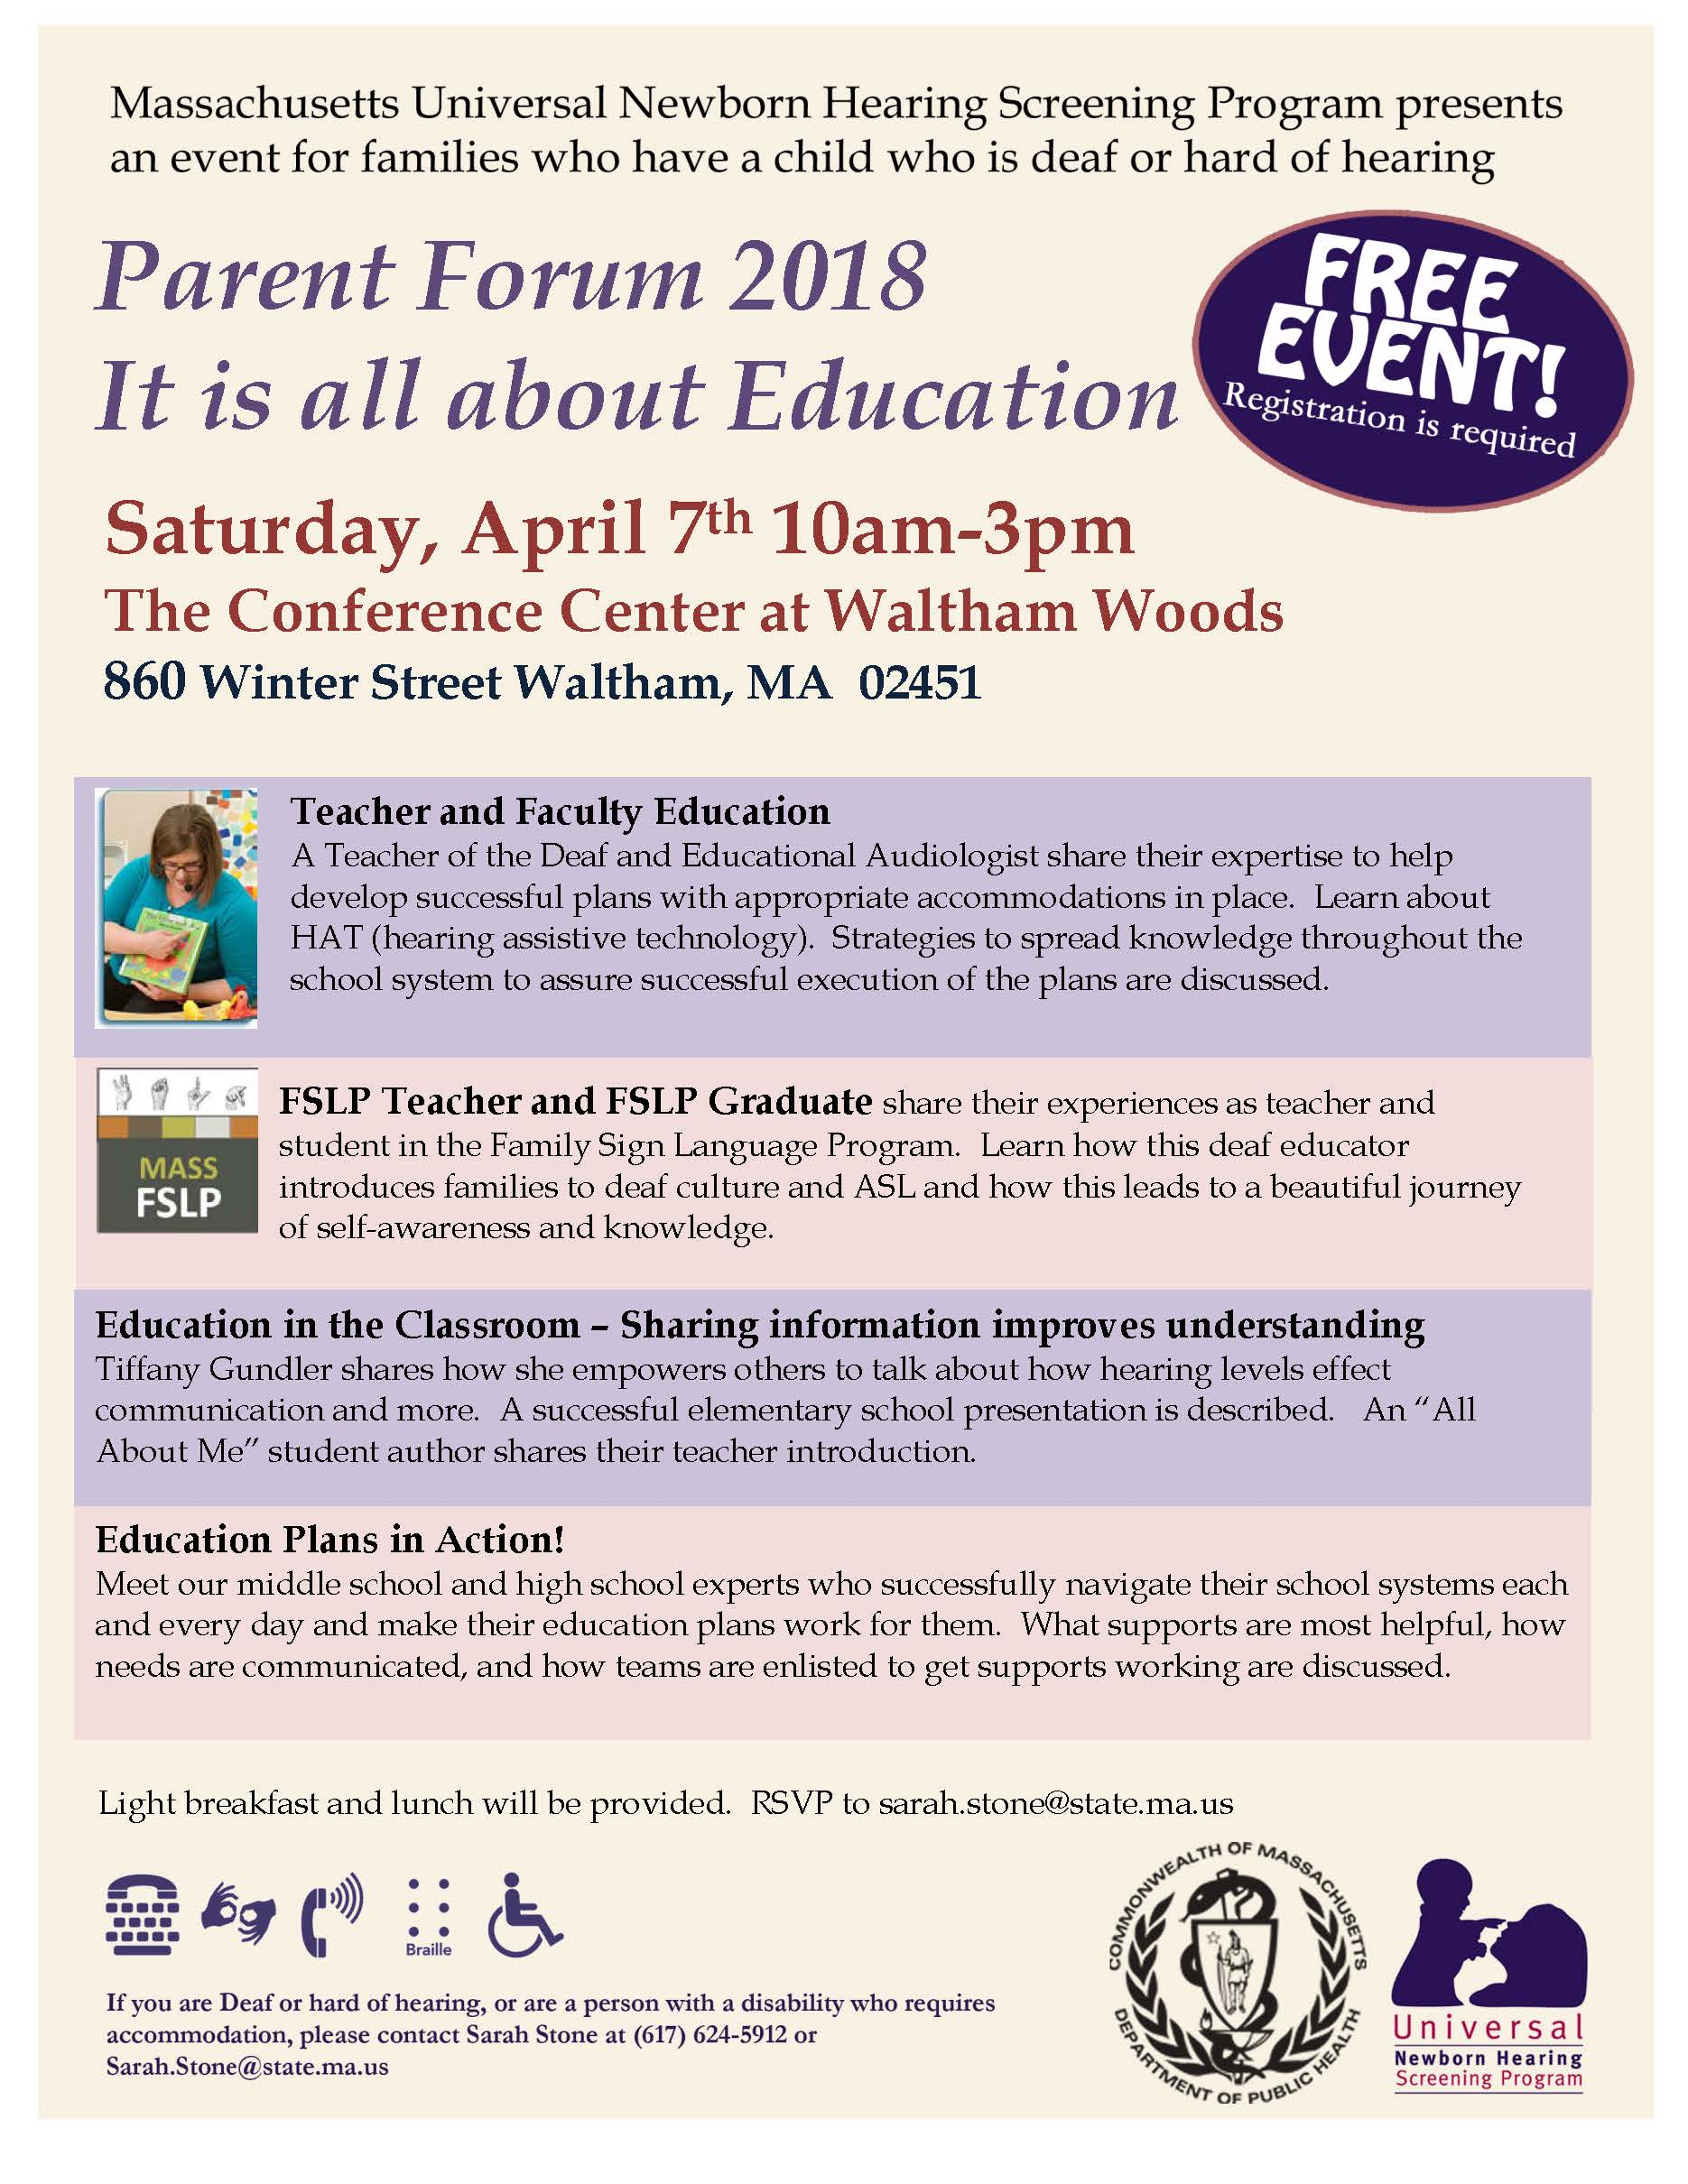 Parent Forum 2018 - It Is All About Education